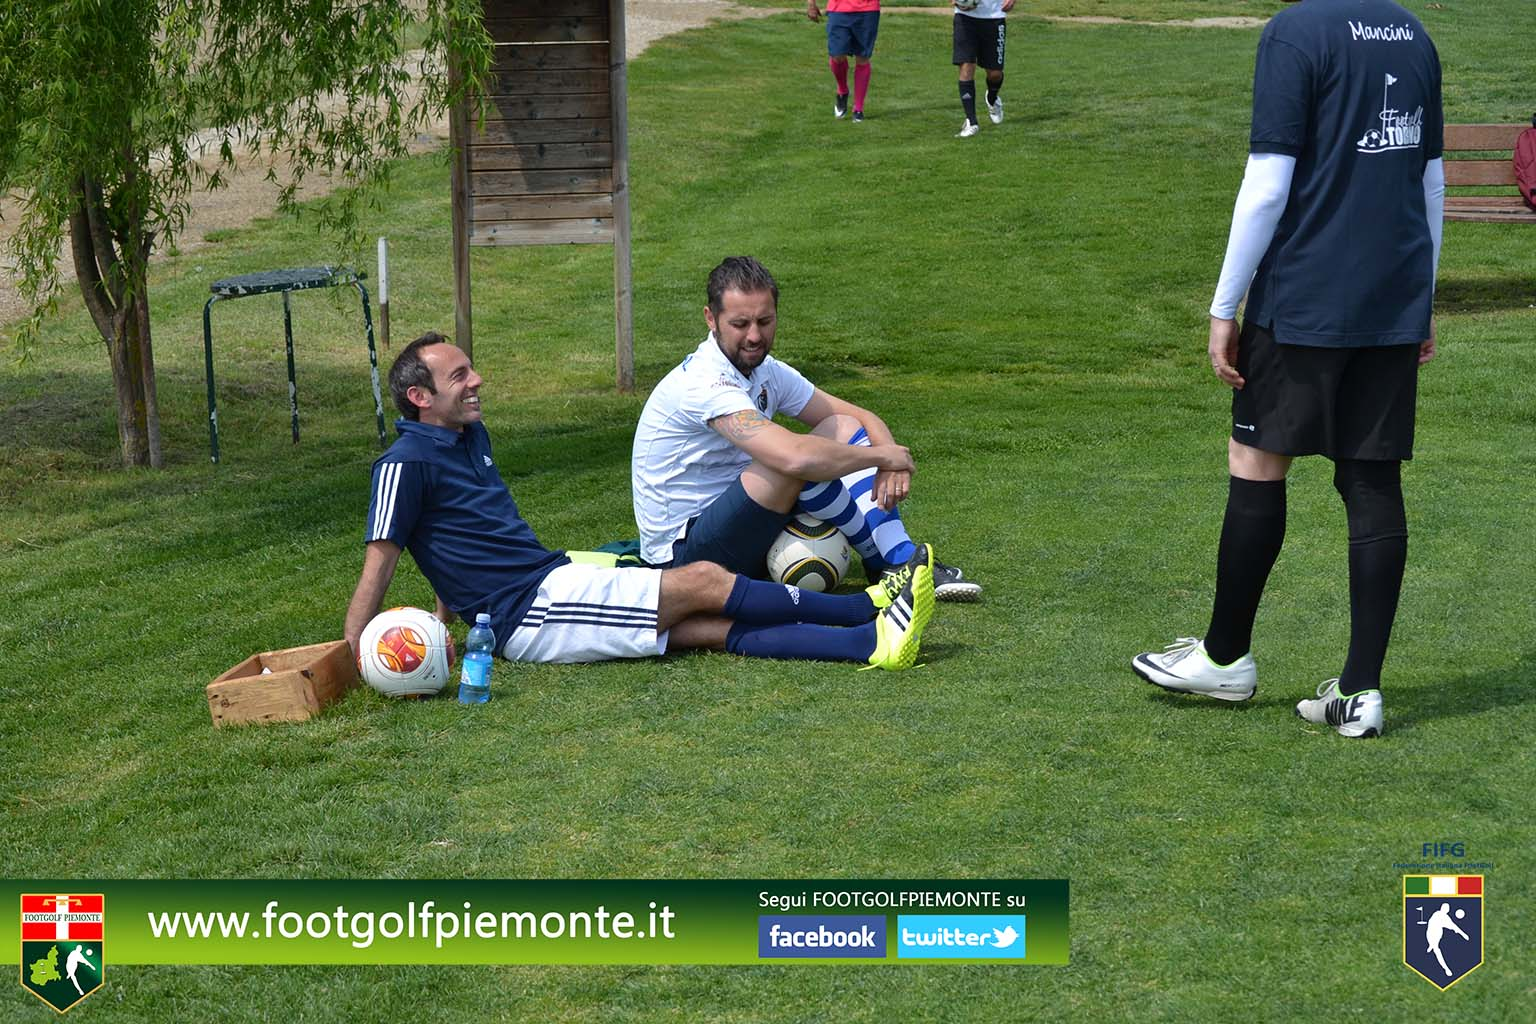 FOTO 9 Regions' Cup Footgolf Piemonte 2016 Golf Città di Asti (At) 30apr16-64